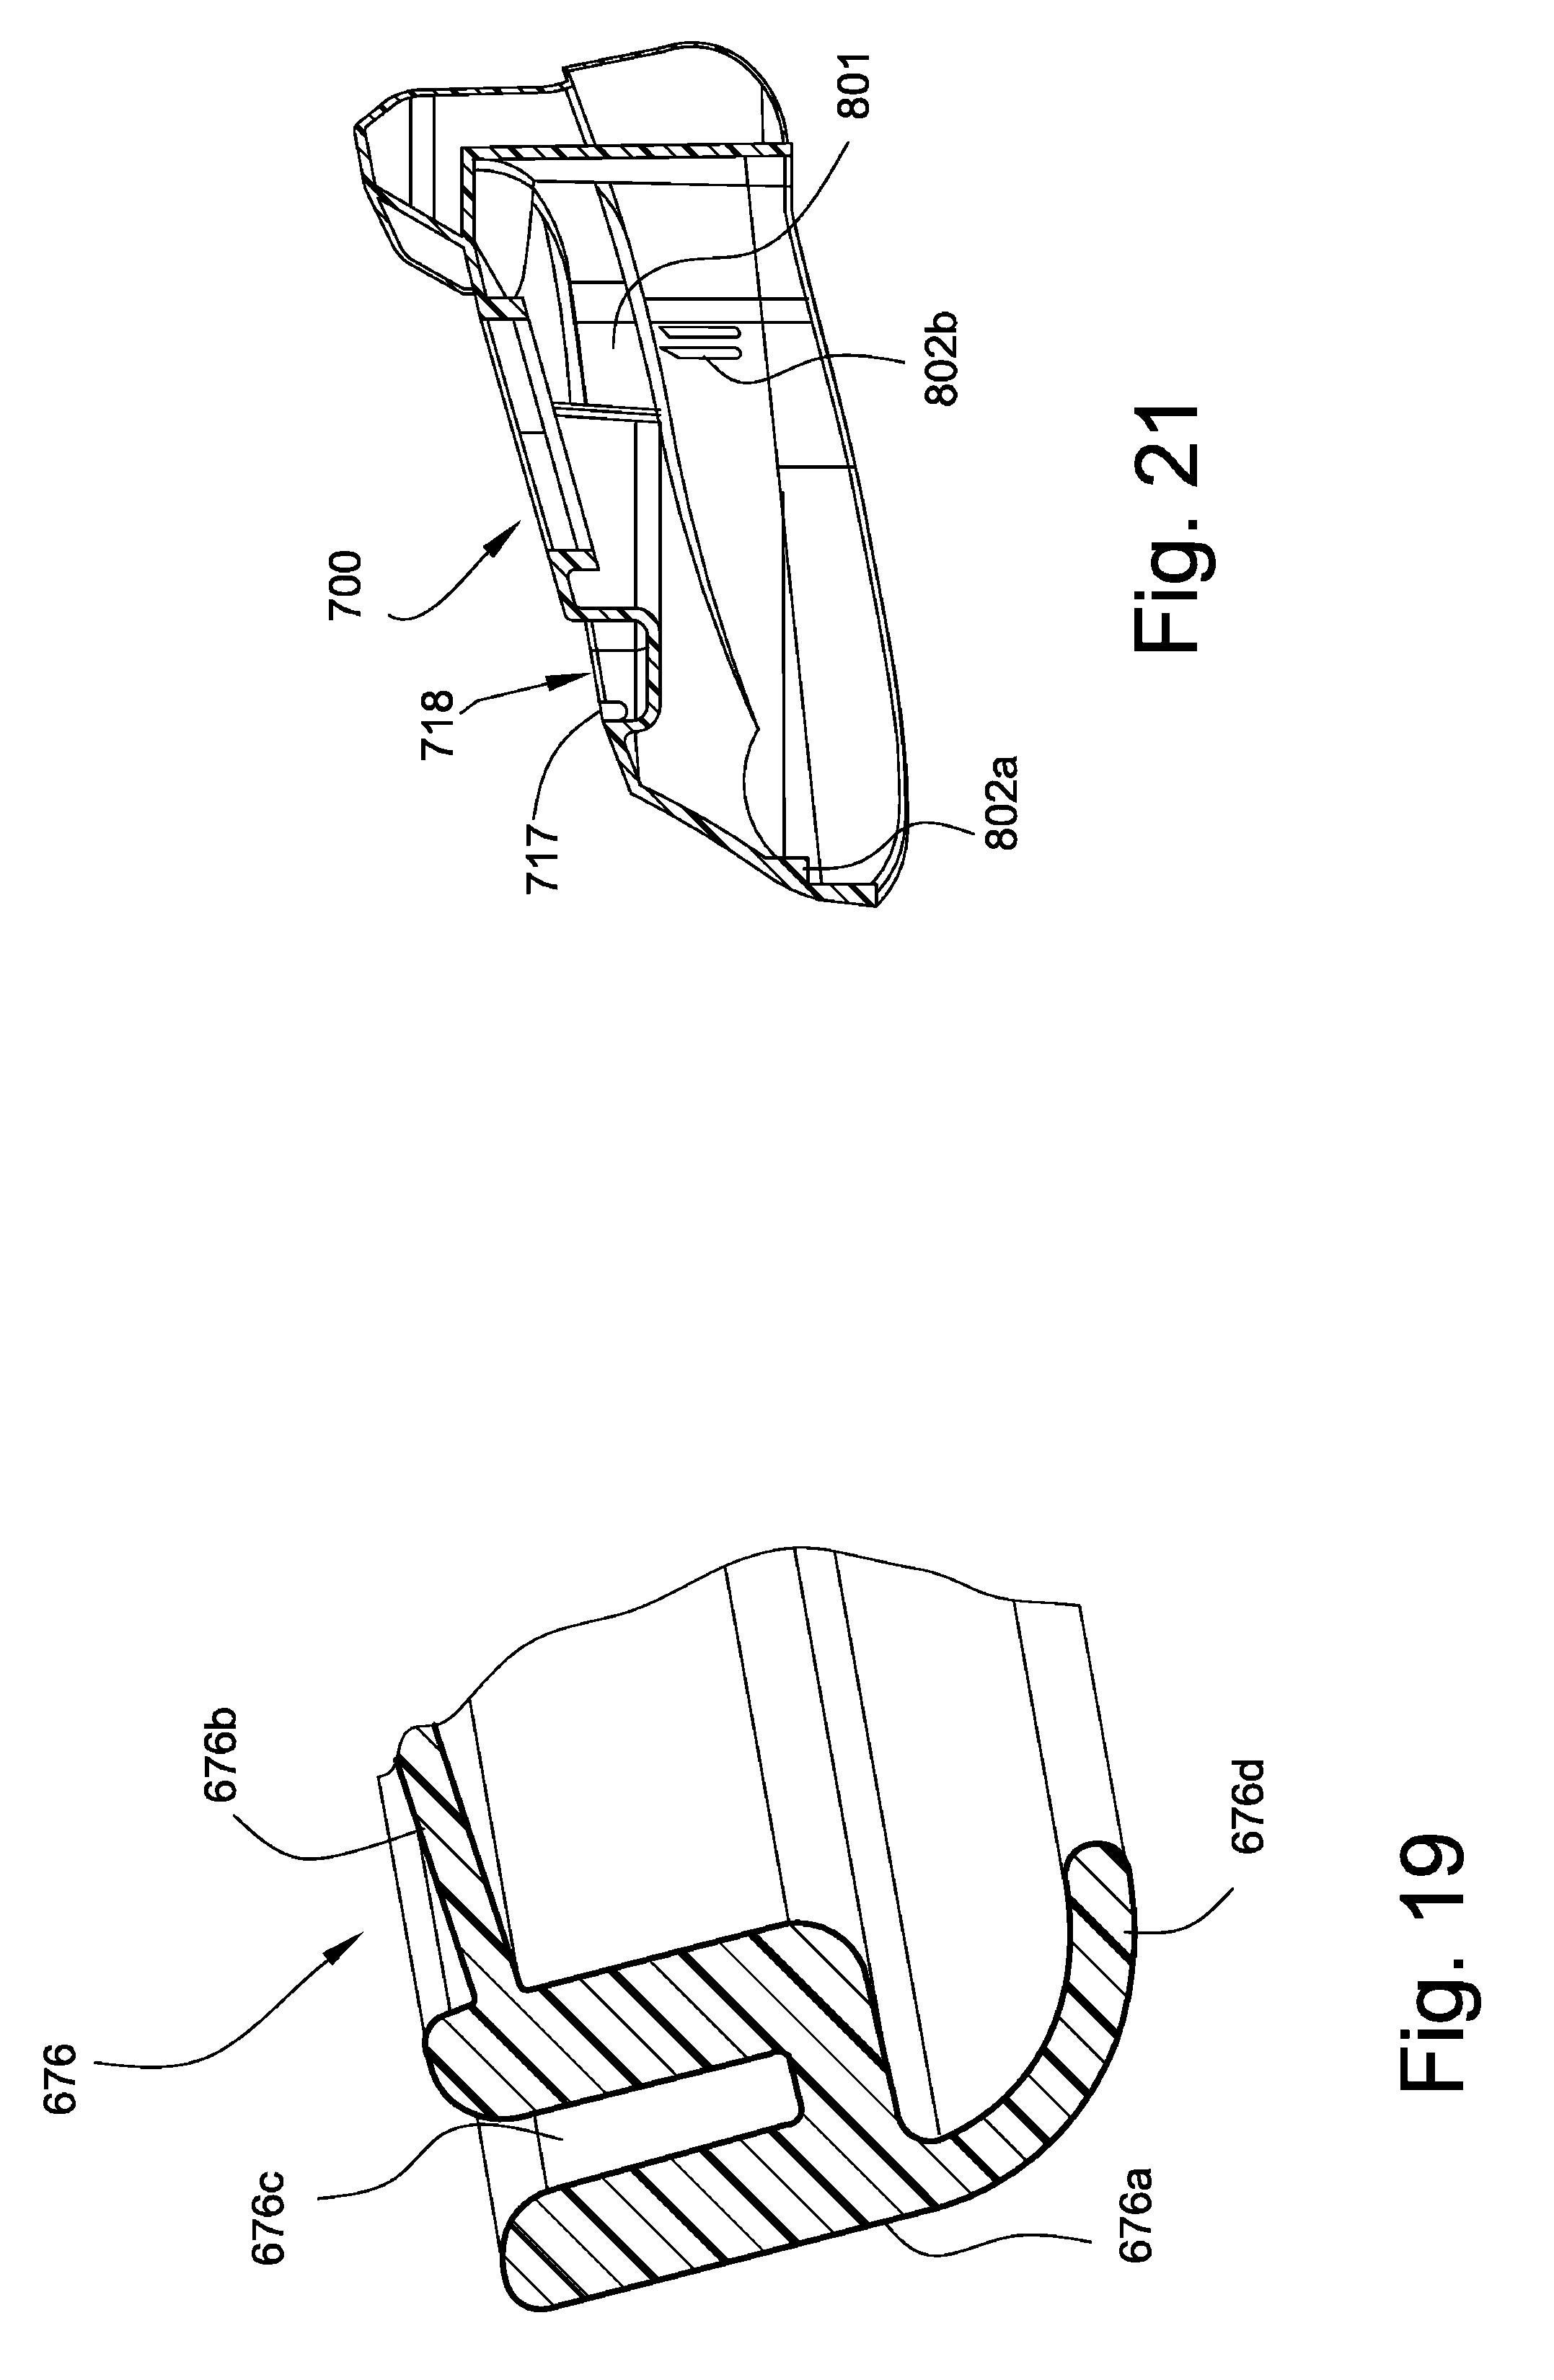 patent us 8,006,691 b2Sunbeam Heating Pad Wiring Diagram Further Fisher And Paykel Cpap #16